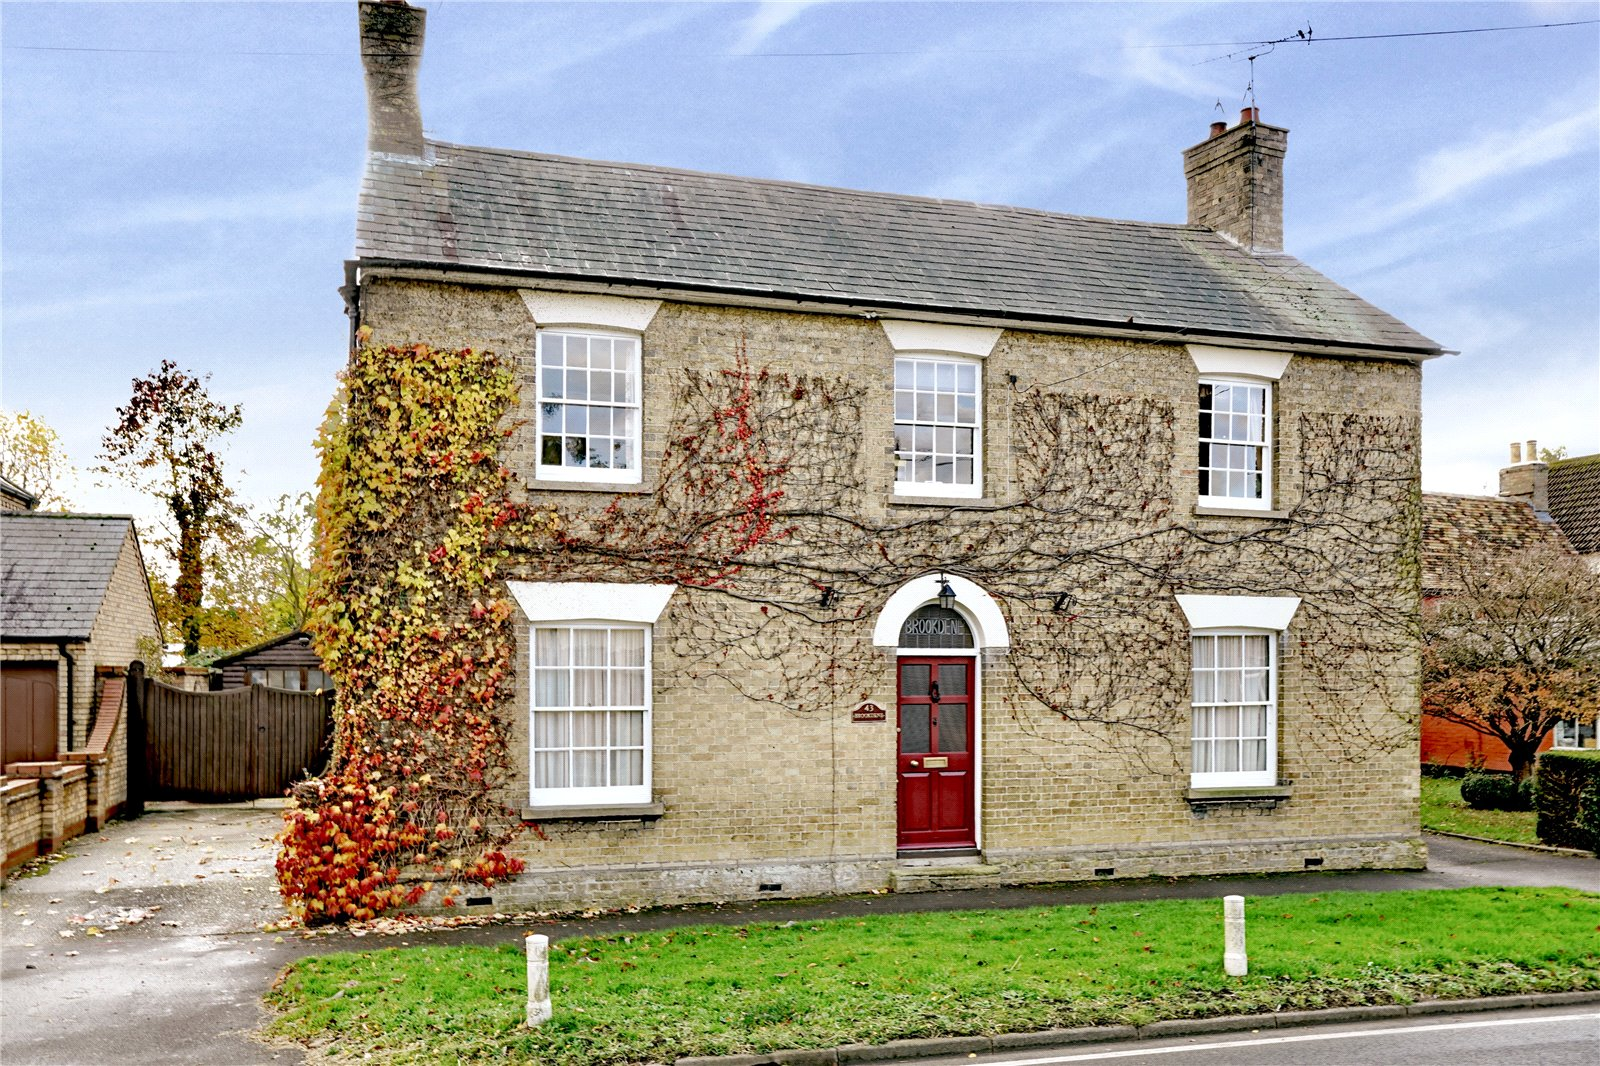 4 bed house for sale in Great Staughton 0